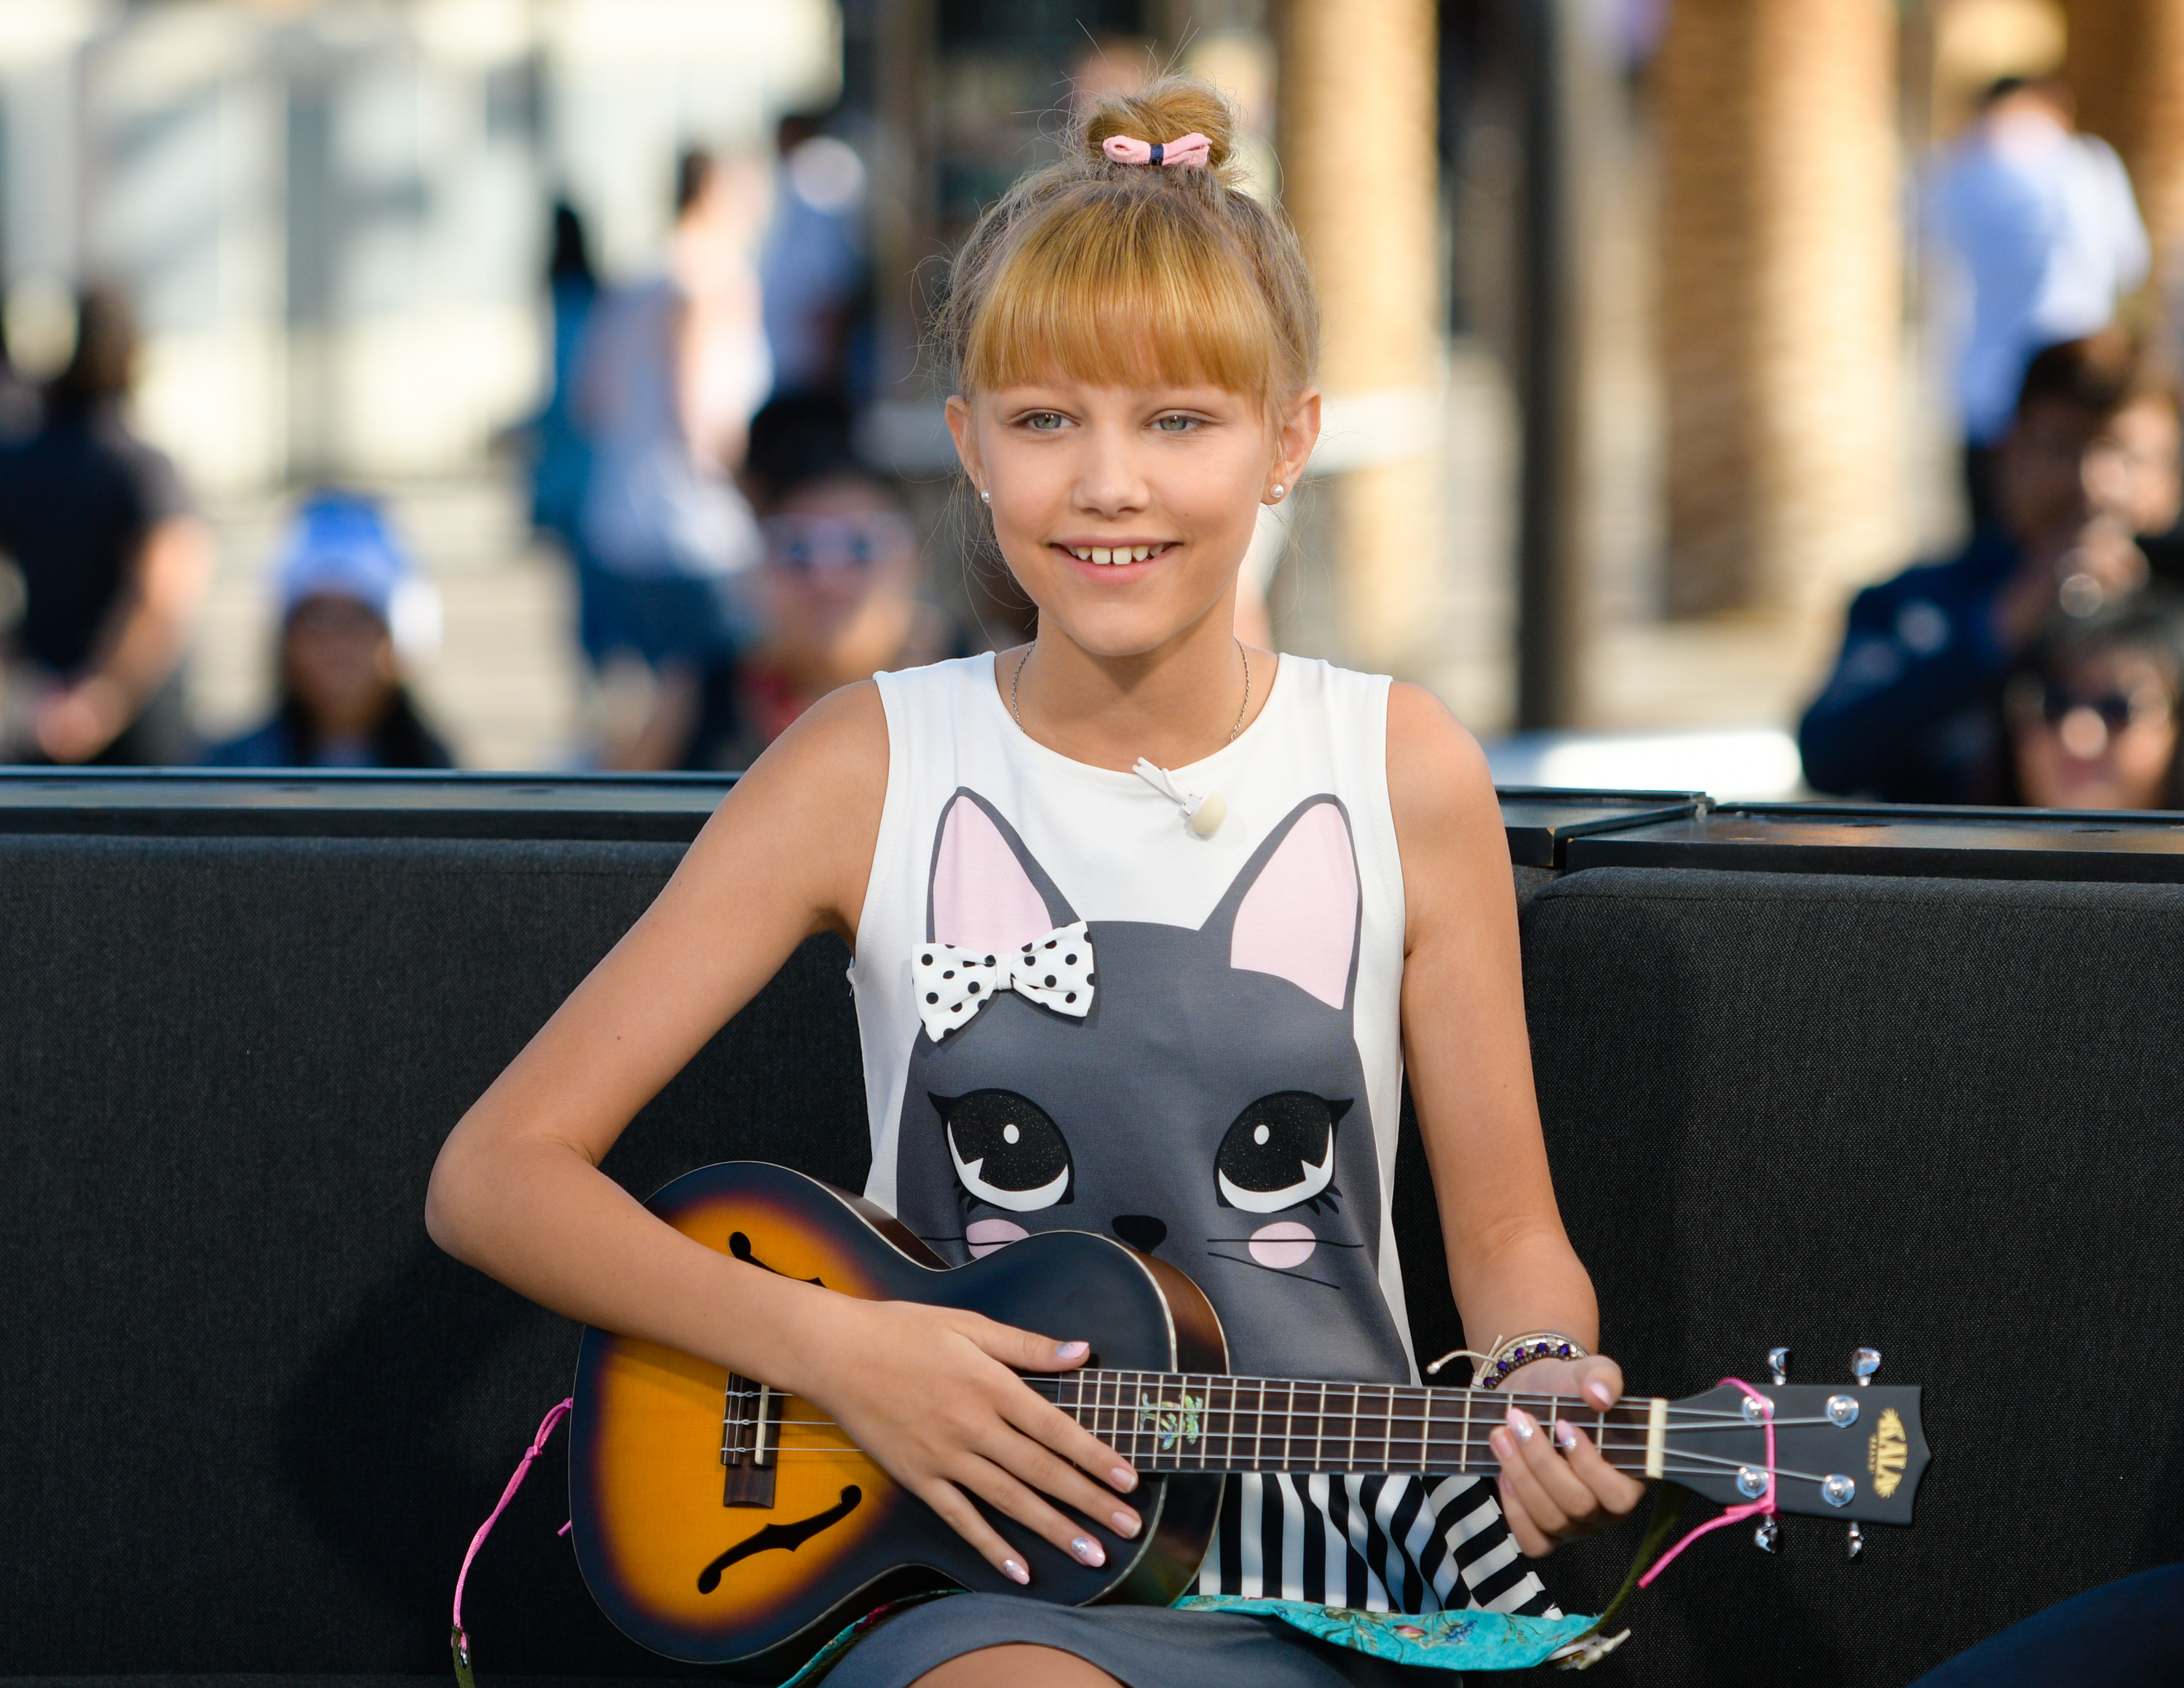 Taylor Swift sent Grace VanderWaal a gift and we cannot handle our happiness